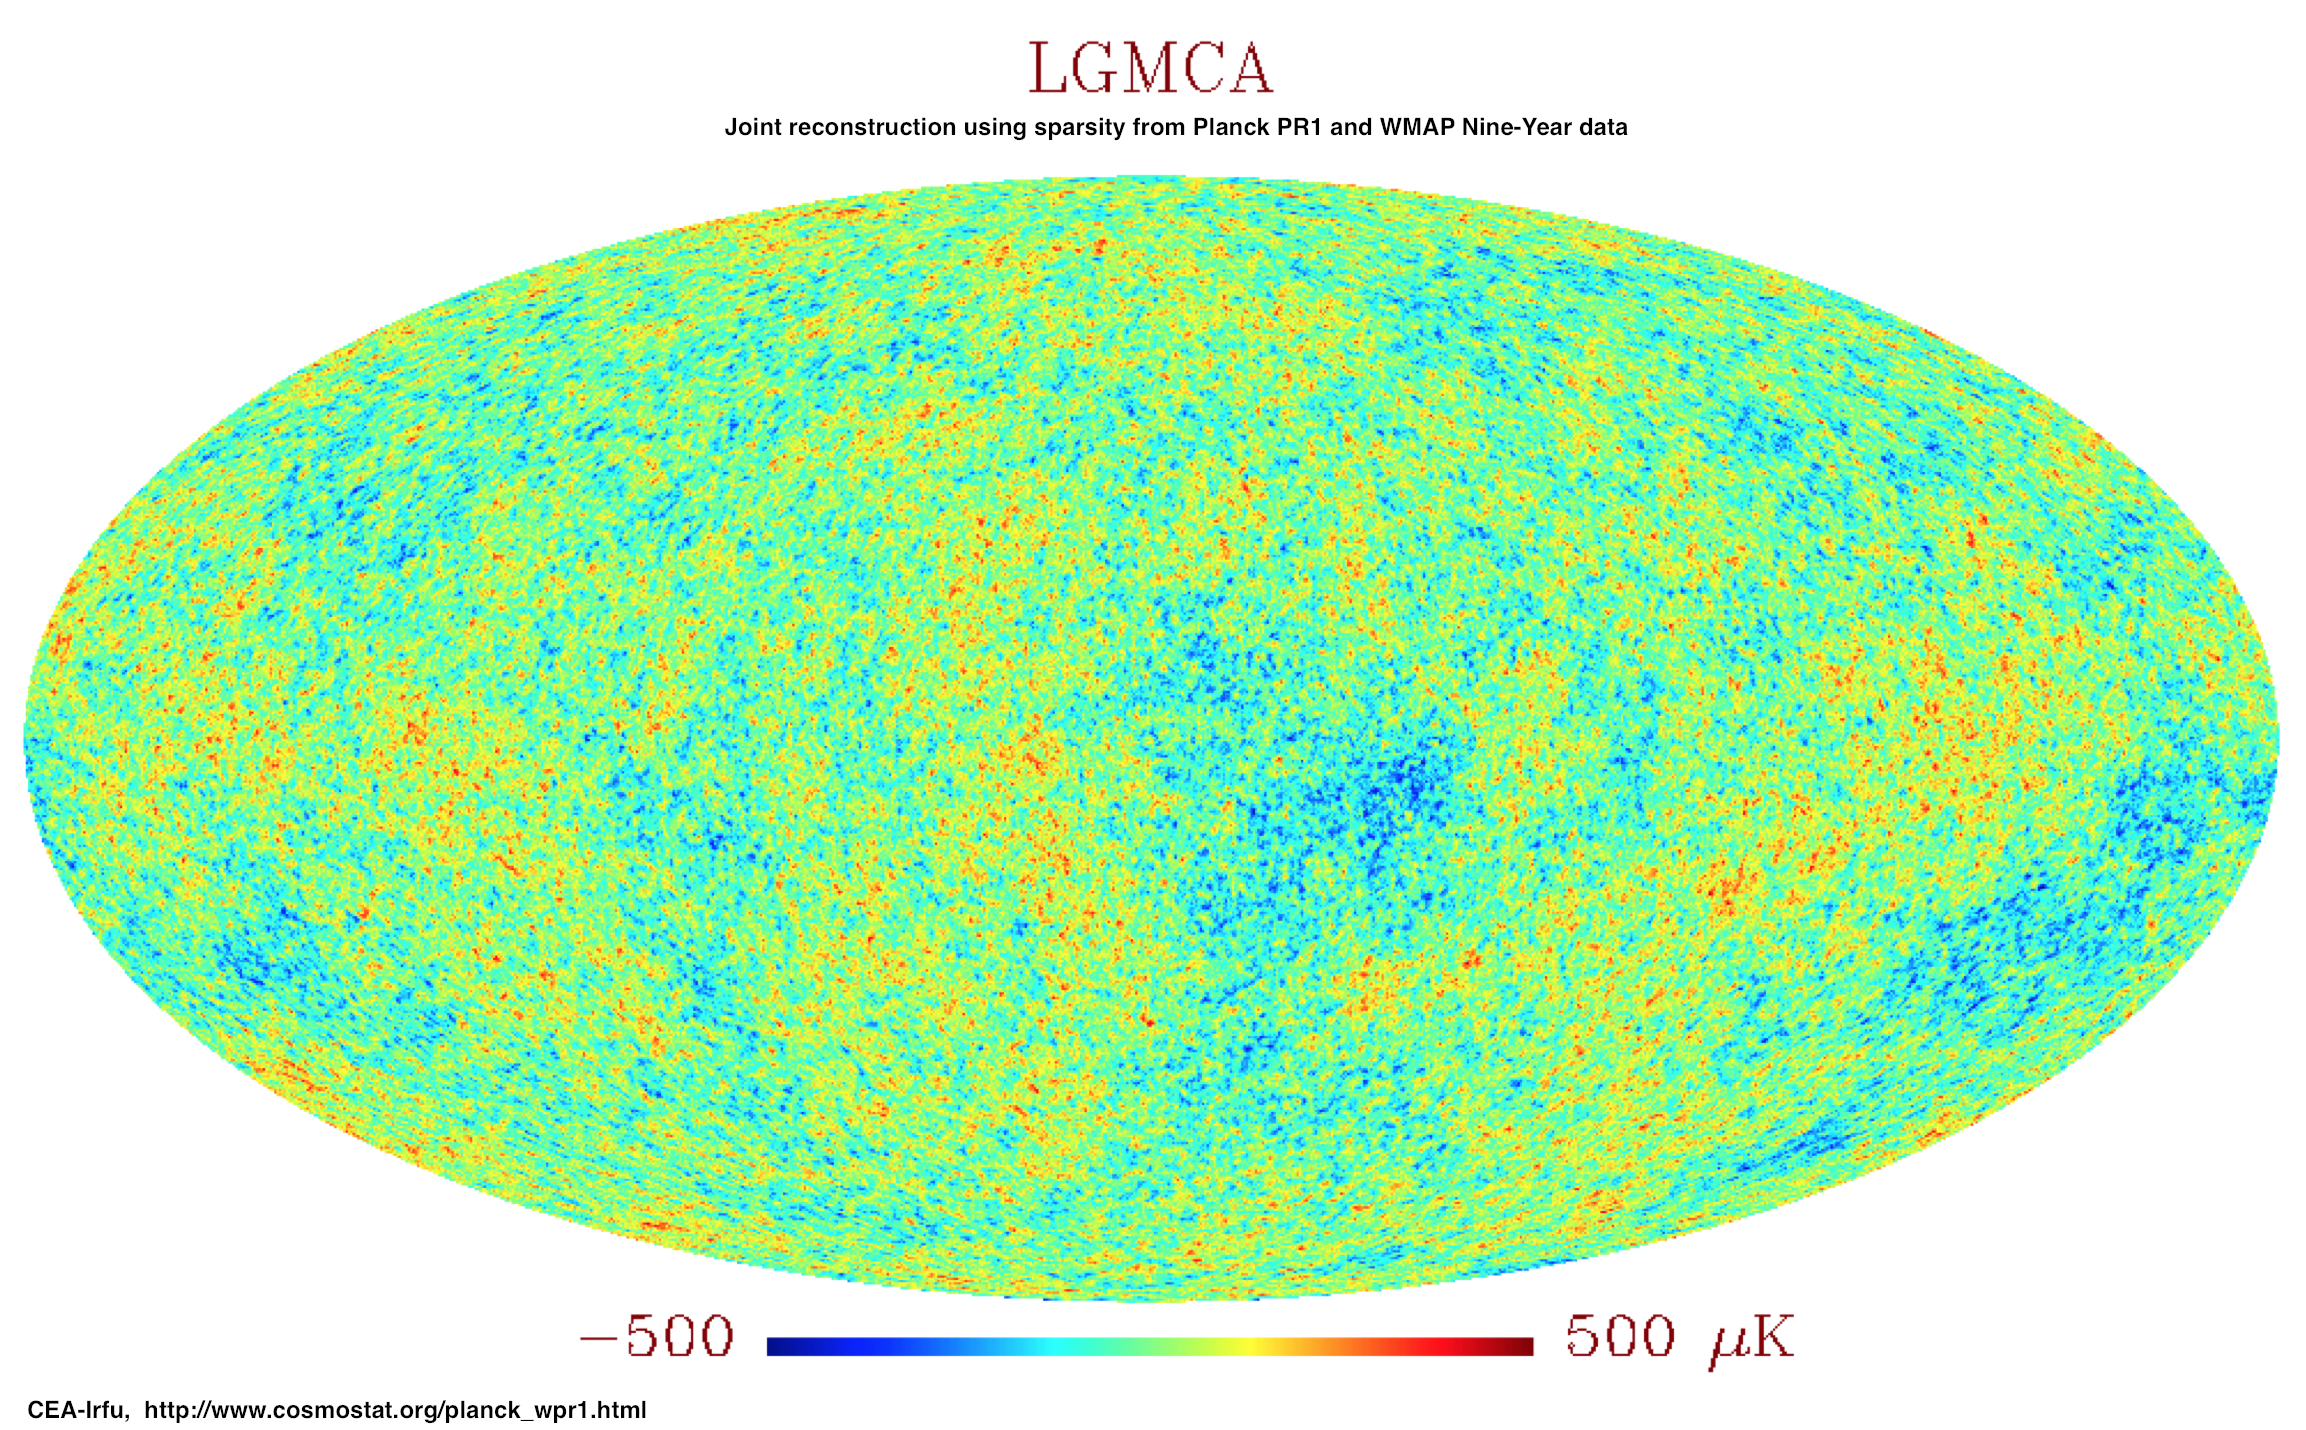 Release of Planck + WMAP CMB map using sparsity.